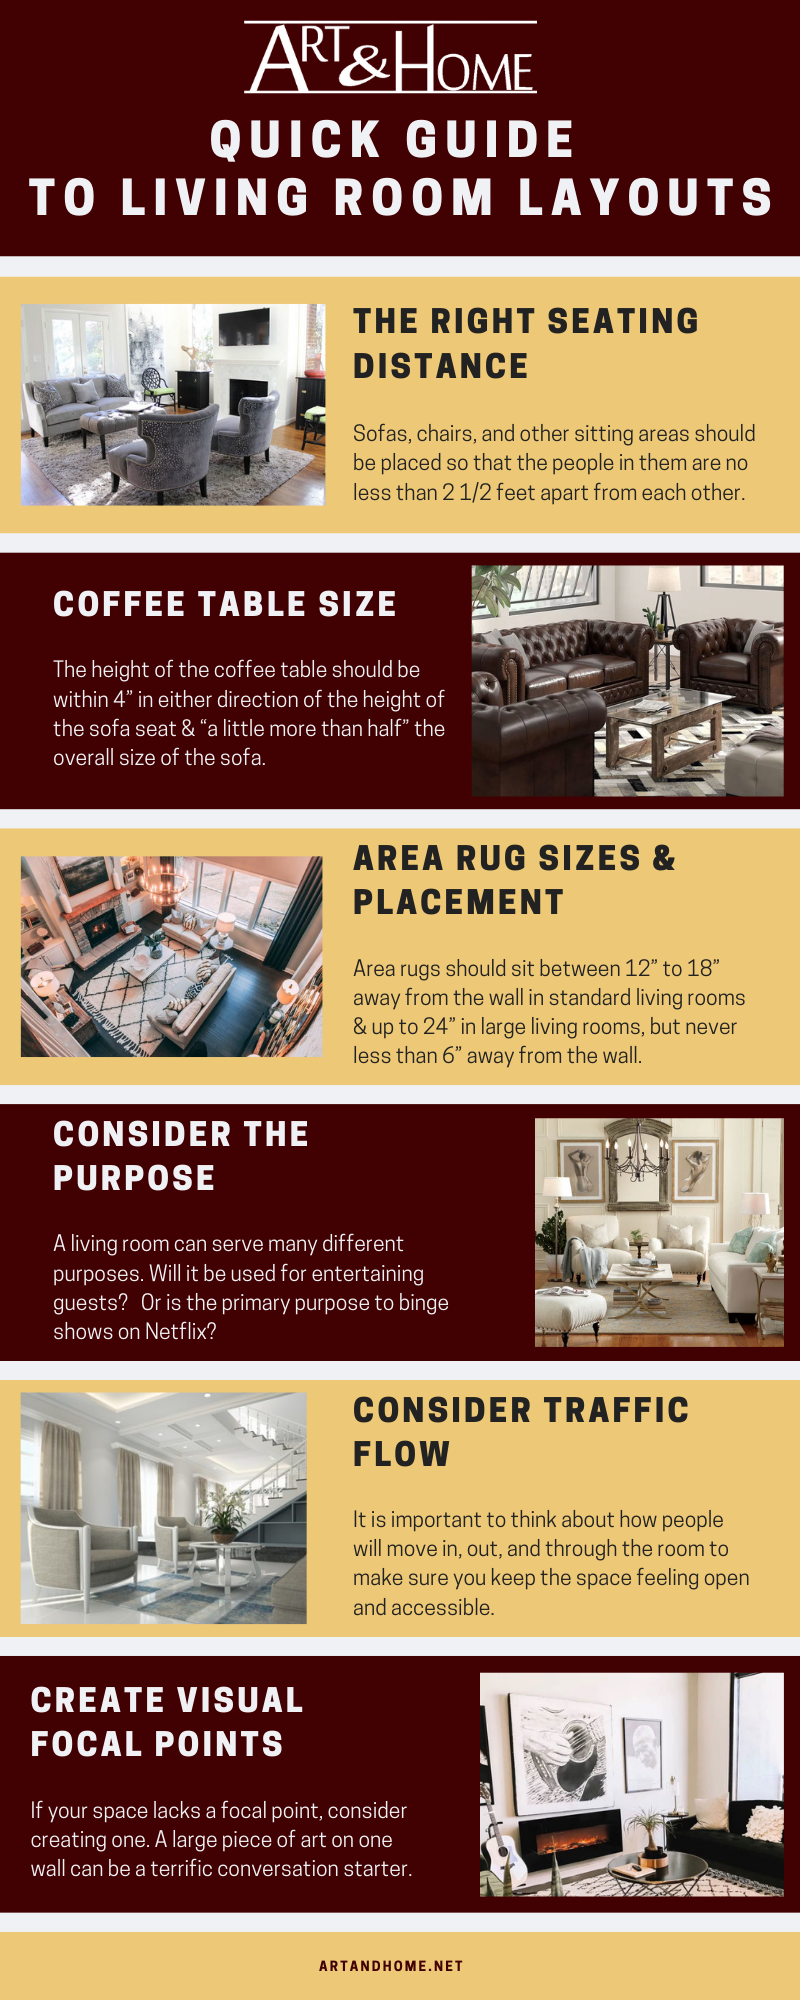 Quick Guide to Living Room Layouts: The Infographic